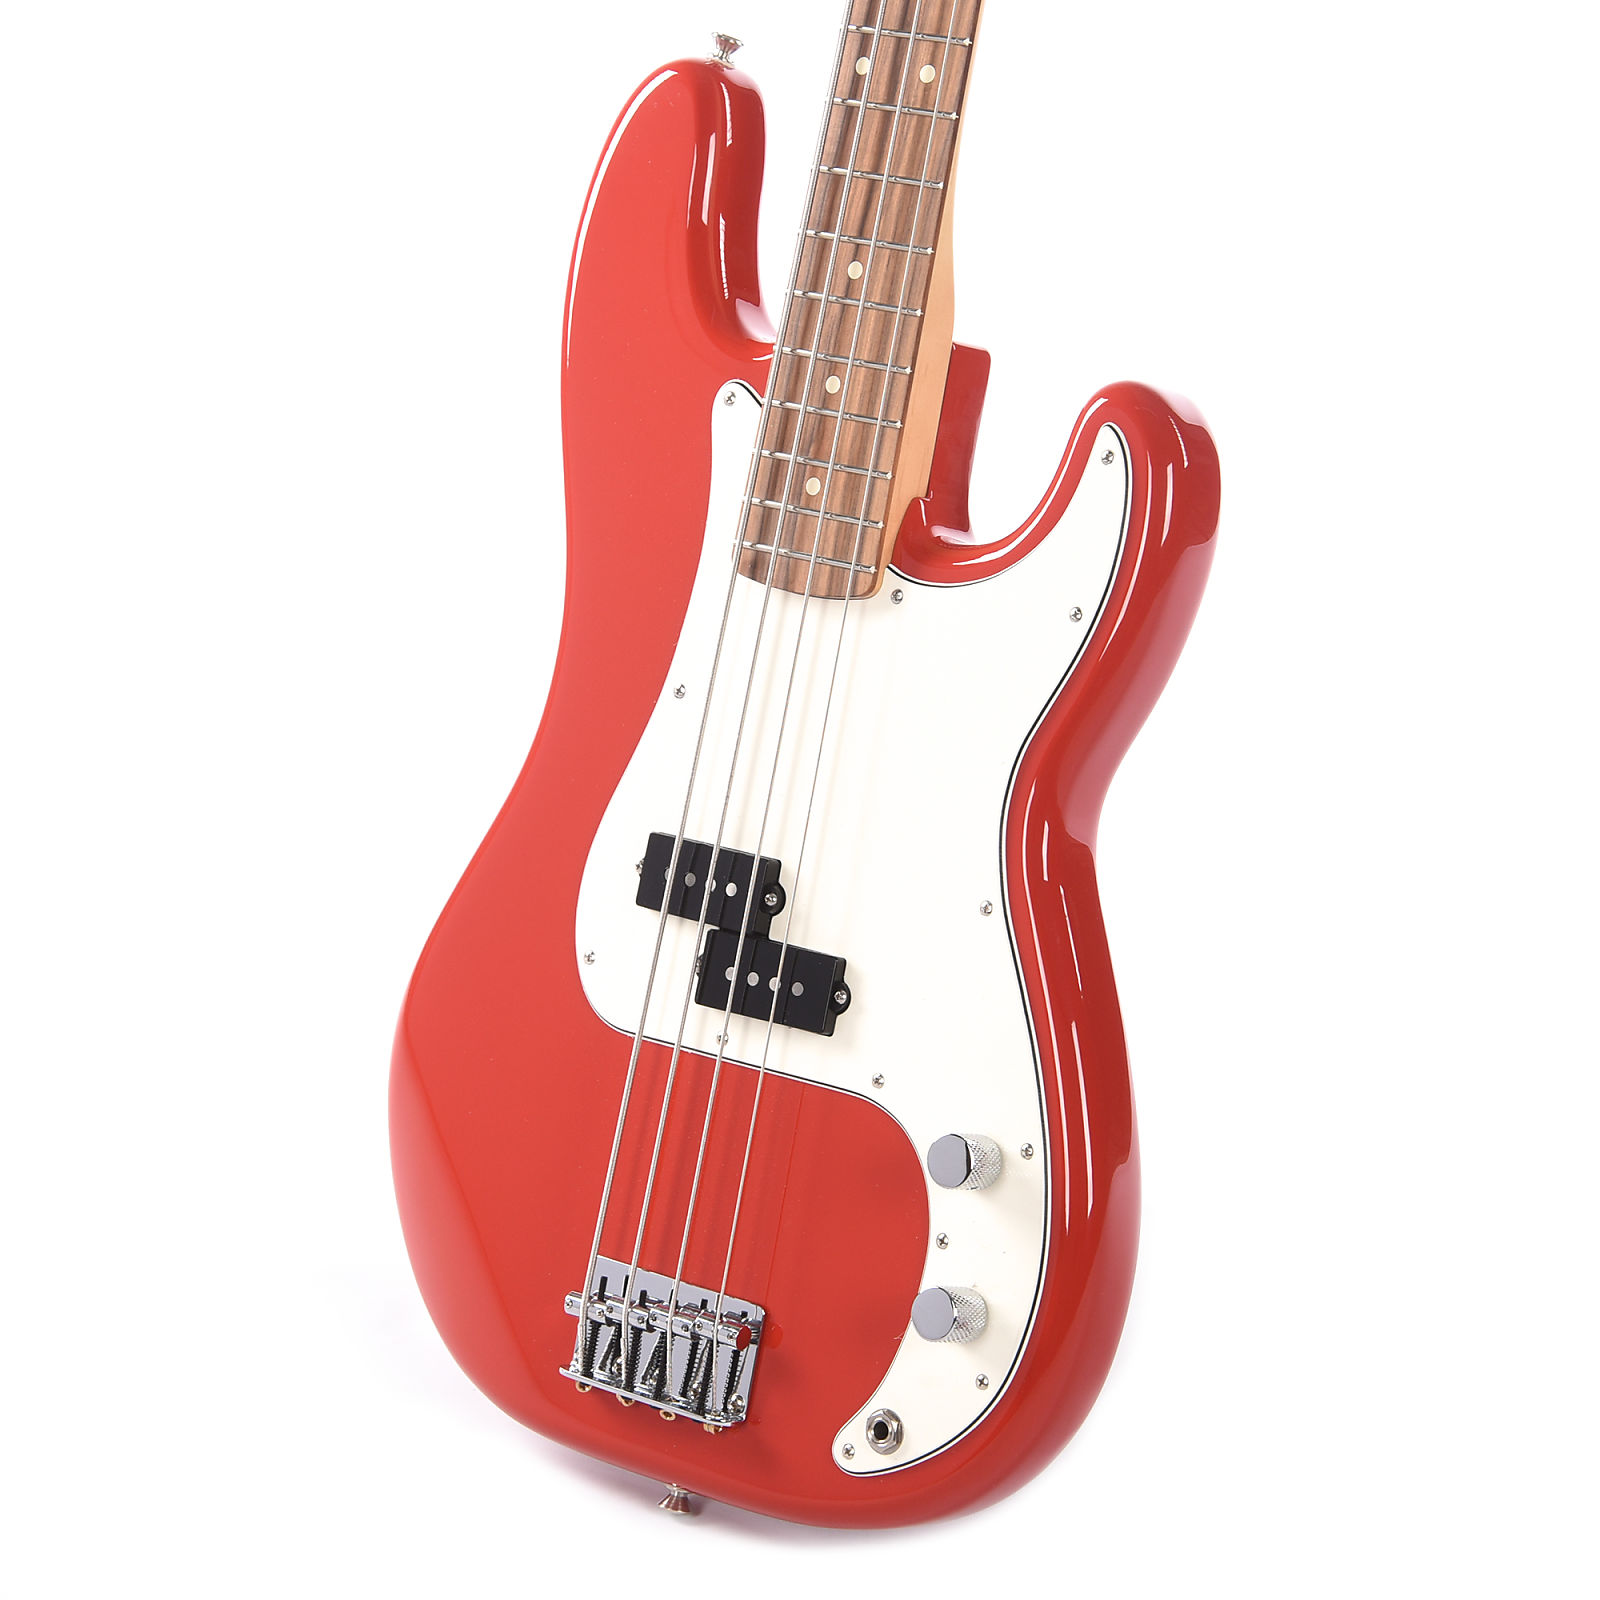 Fender Player Precision Bass Sonic Red Accurate Tone Control